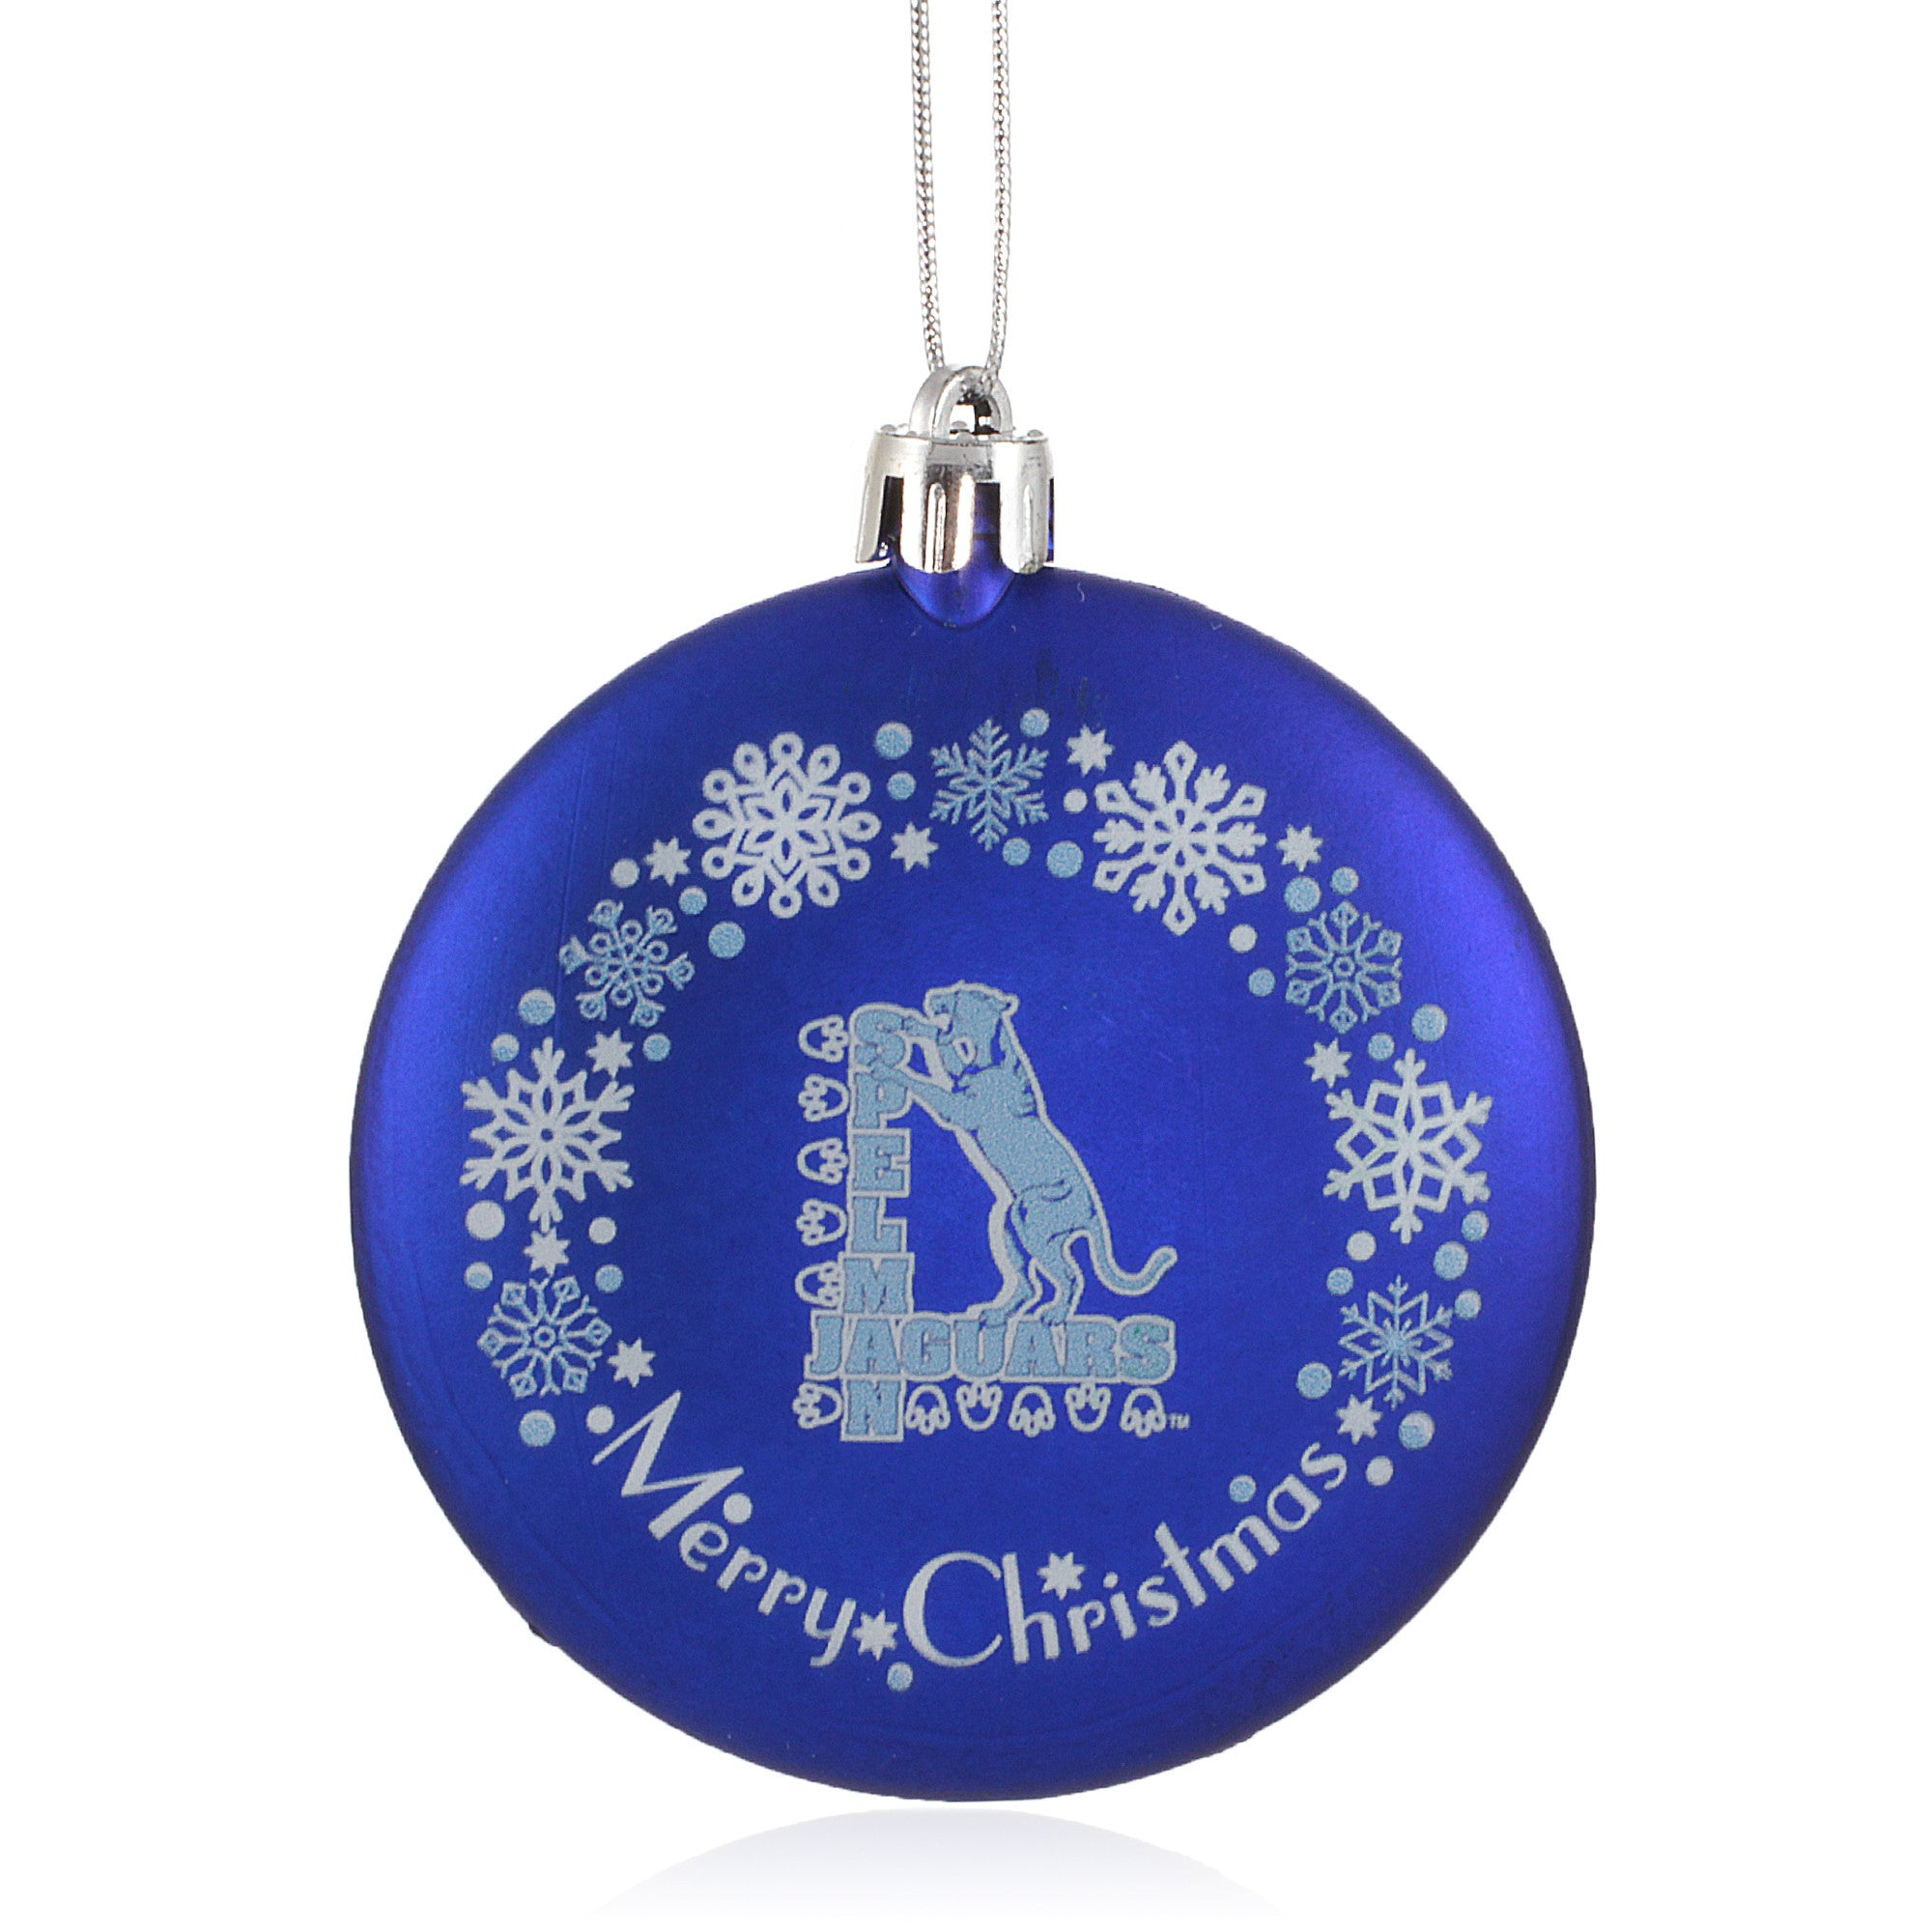 Spelman College Jaguars Christmas Ornament